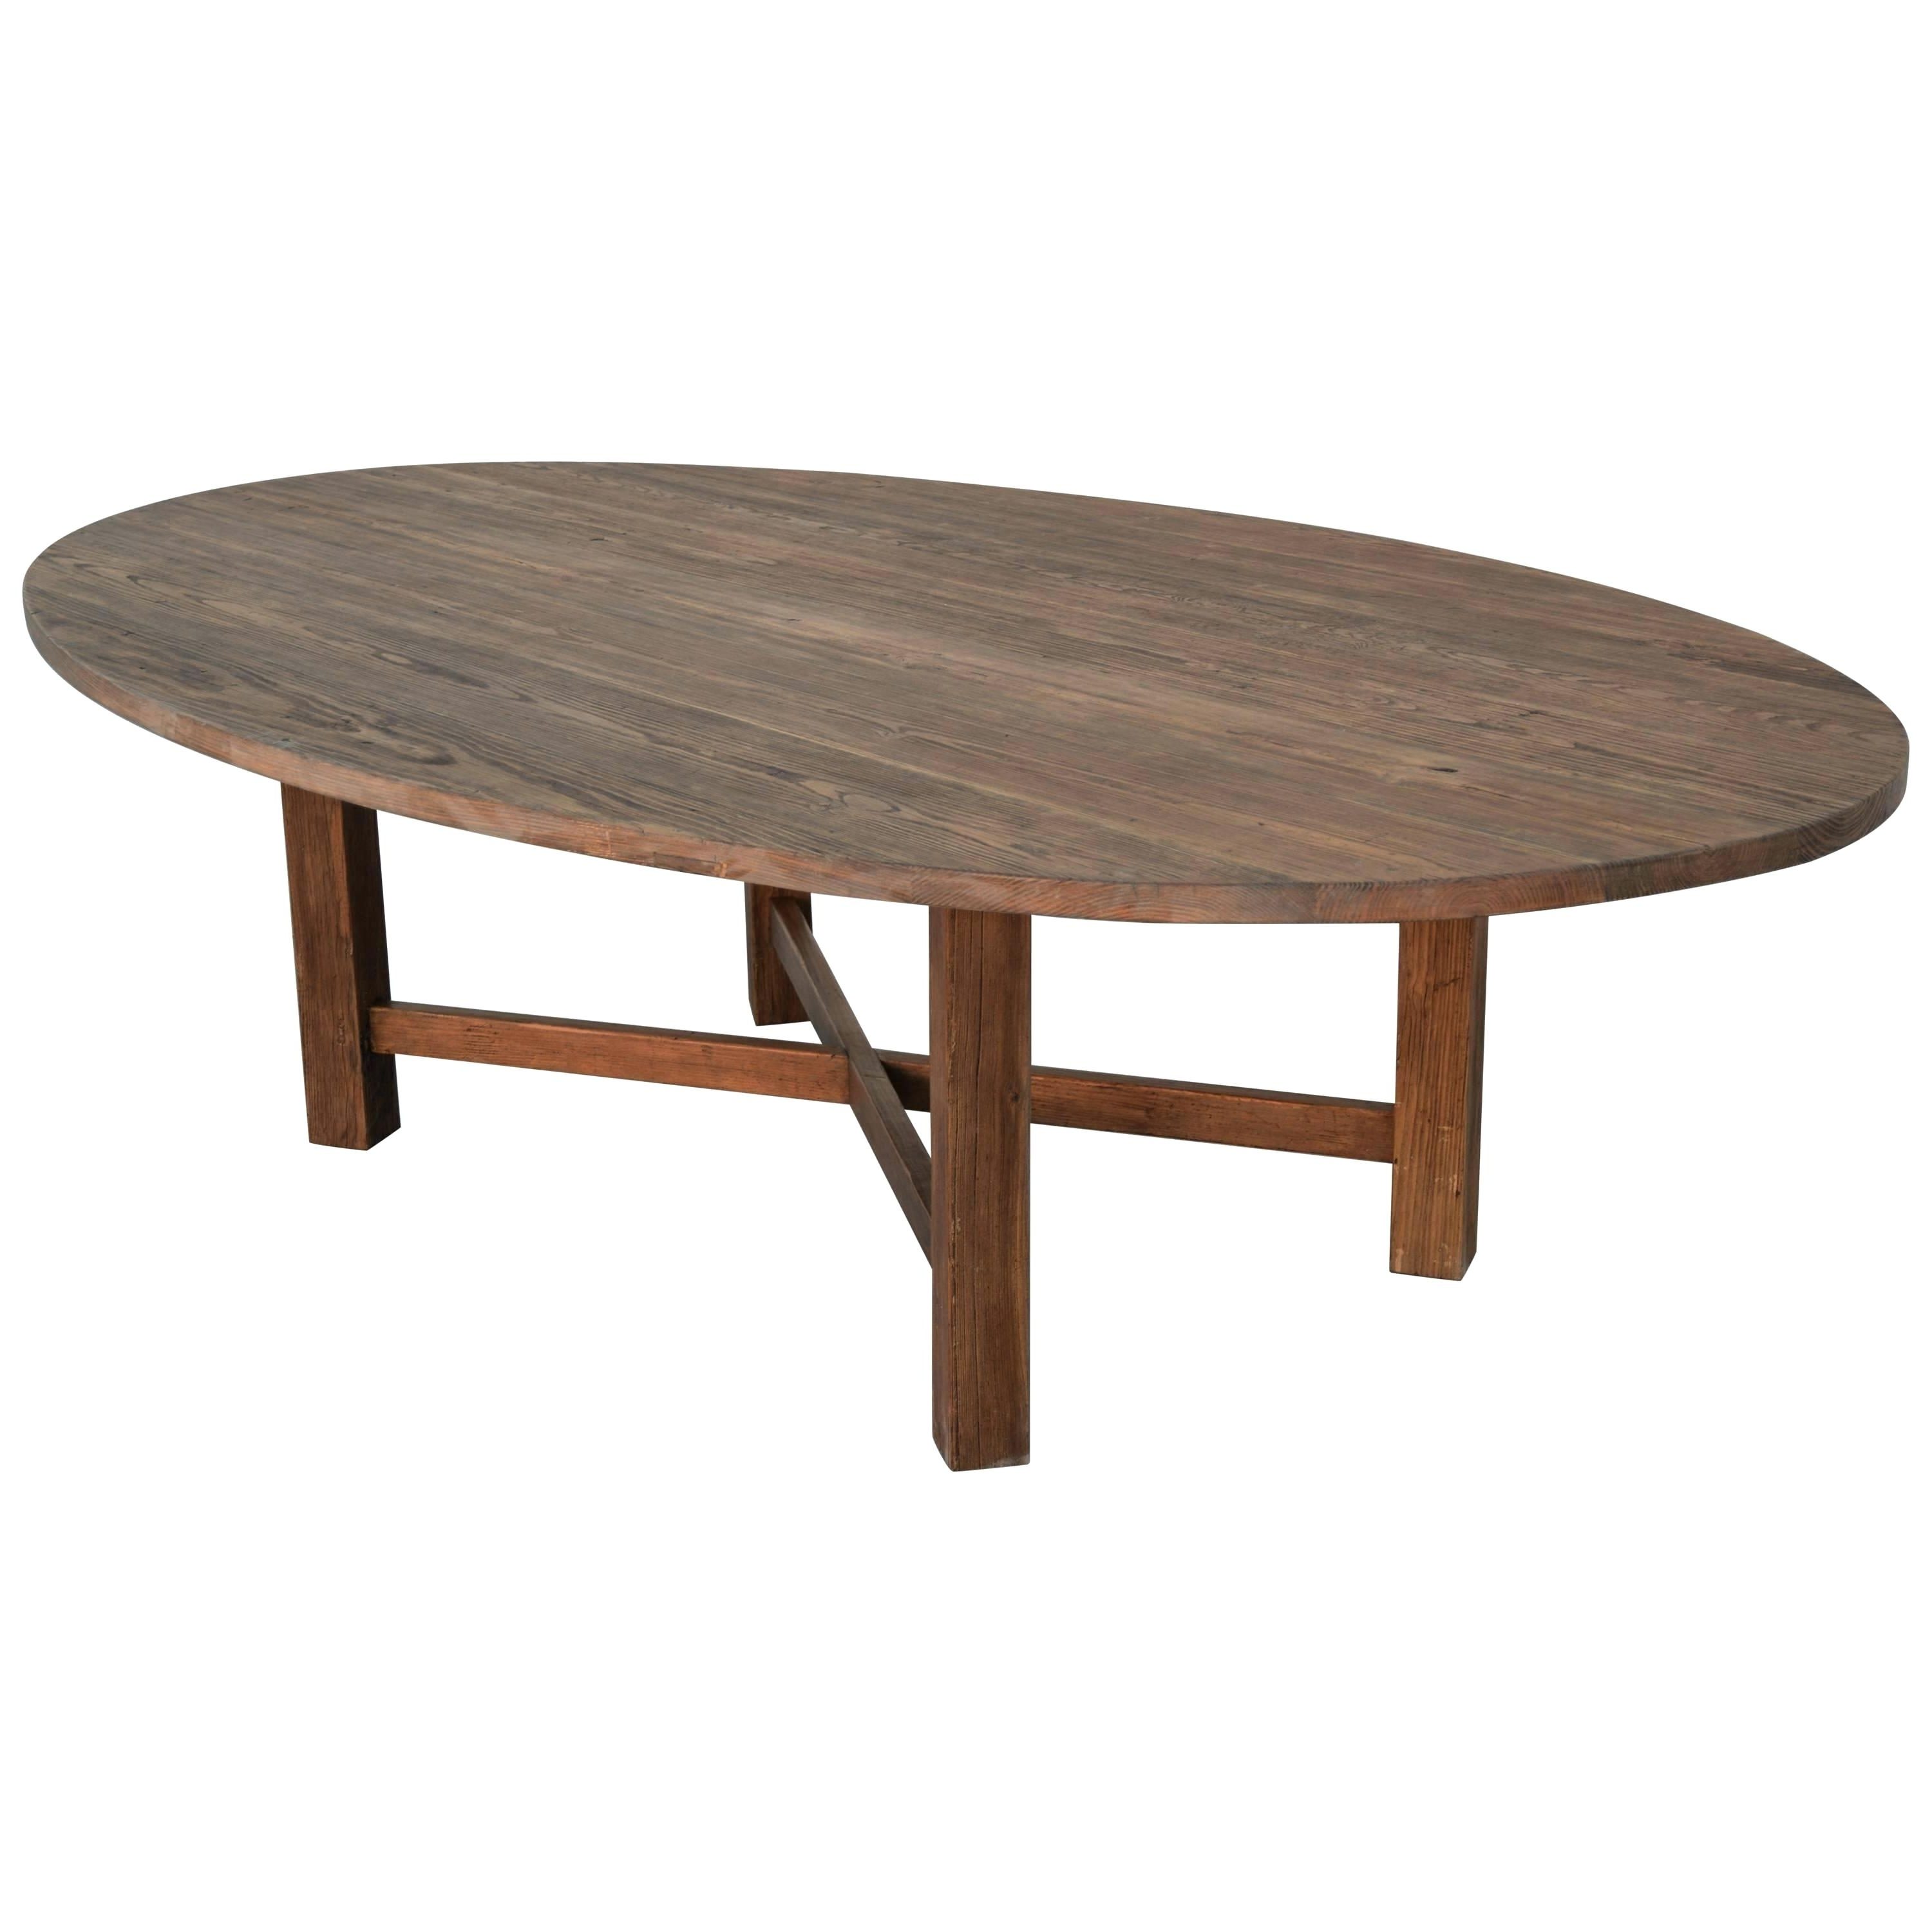 Reclaimed Wood Oval Dining Table Oval Dining Table In Reclaimed With Best And Newest Oval Reclaimed Wood Dining Tables (View 17 of 25)